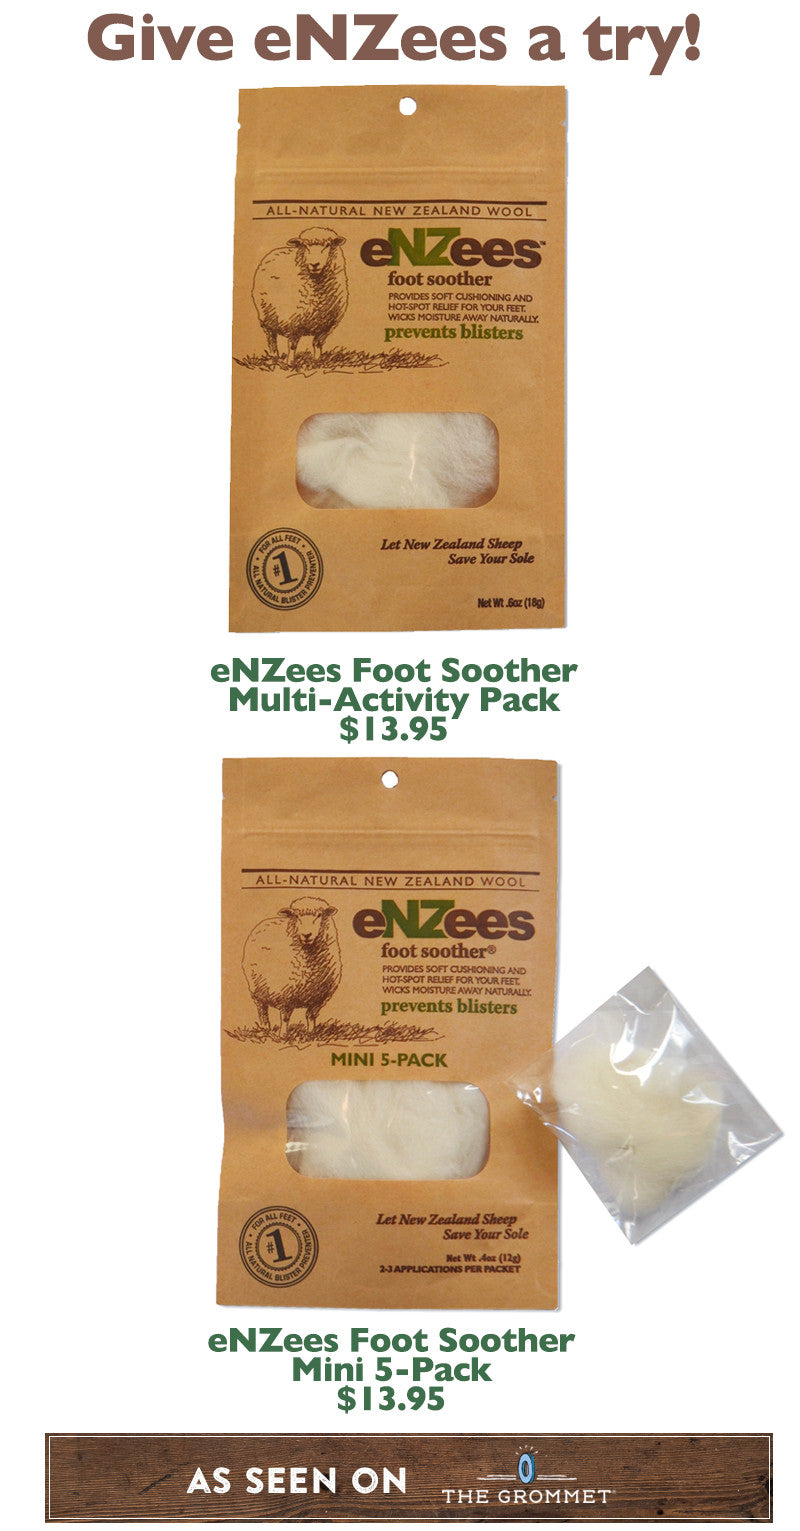 eNZees Foot Soother prevents blisters while hiking, running, or walking